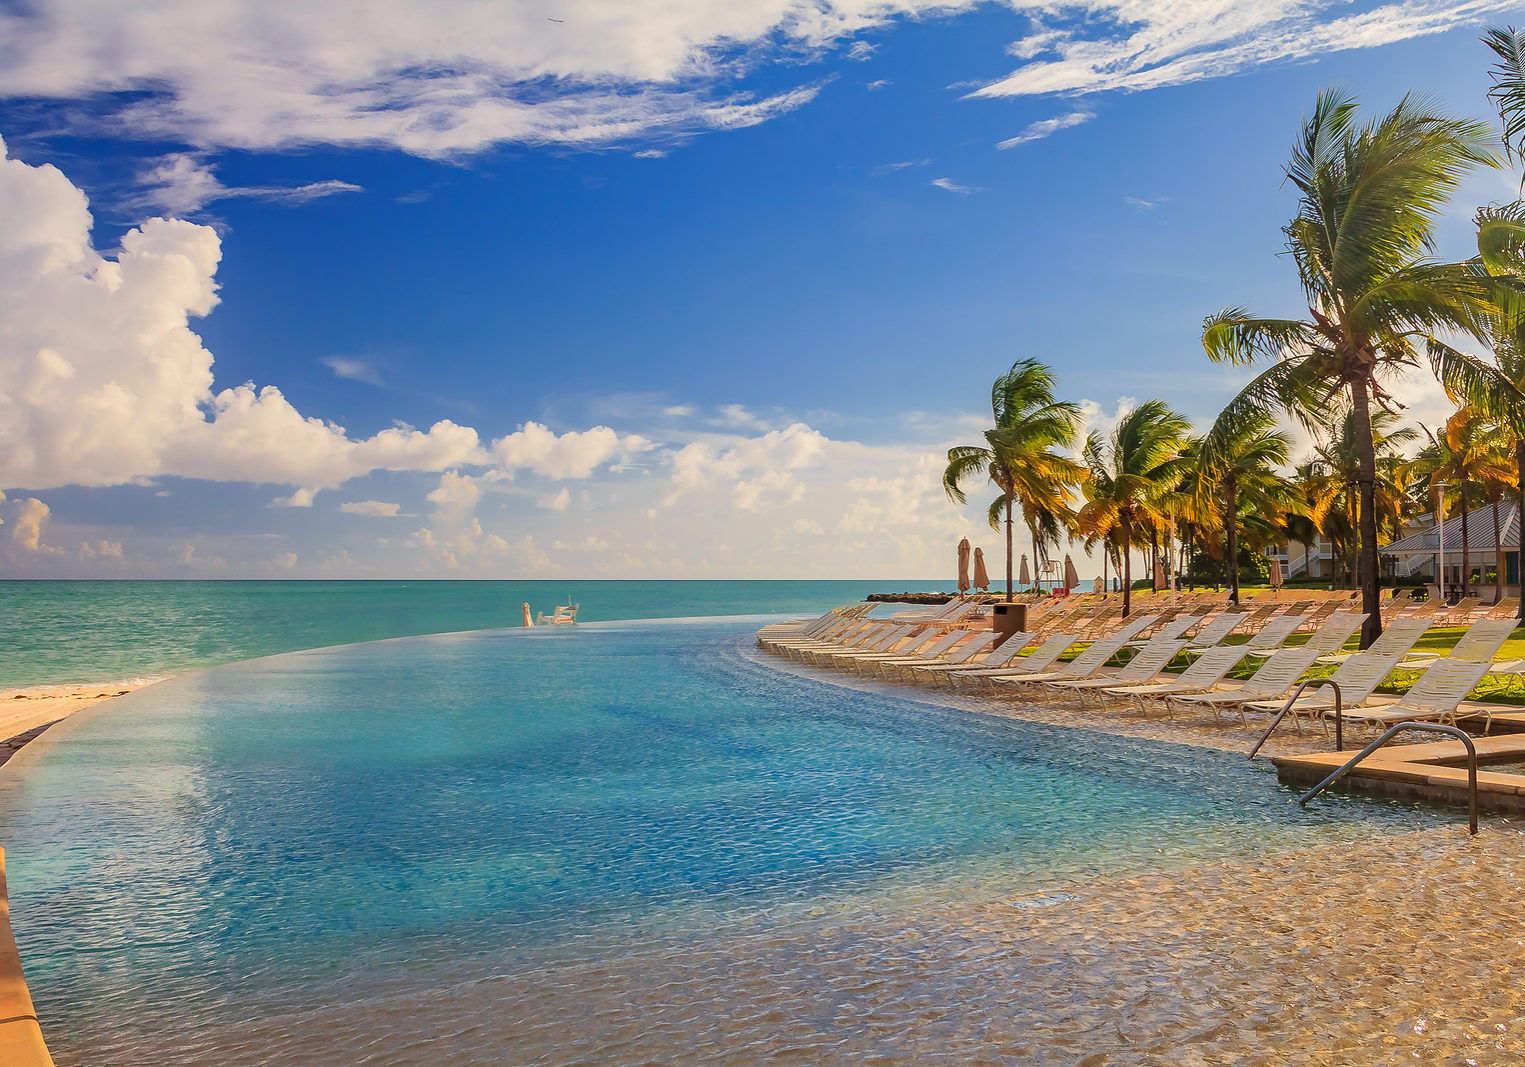 Pool  chairs by the turquoise water of the Caribbean sea and a pool on a tropical beach in Freeport, Bahamas